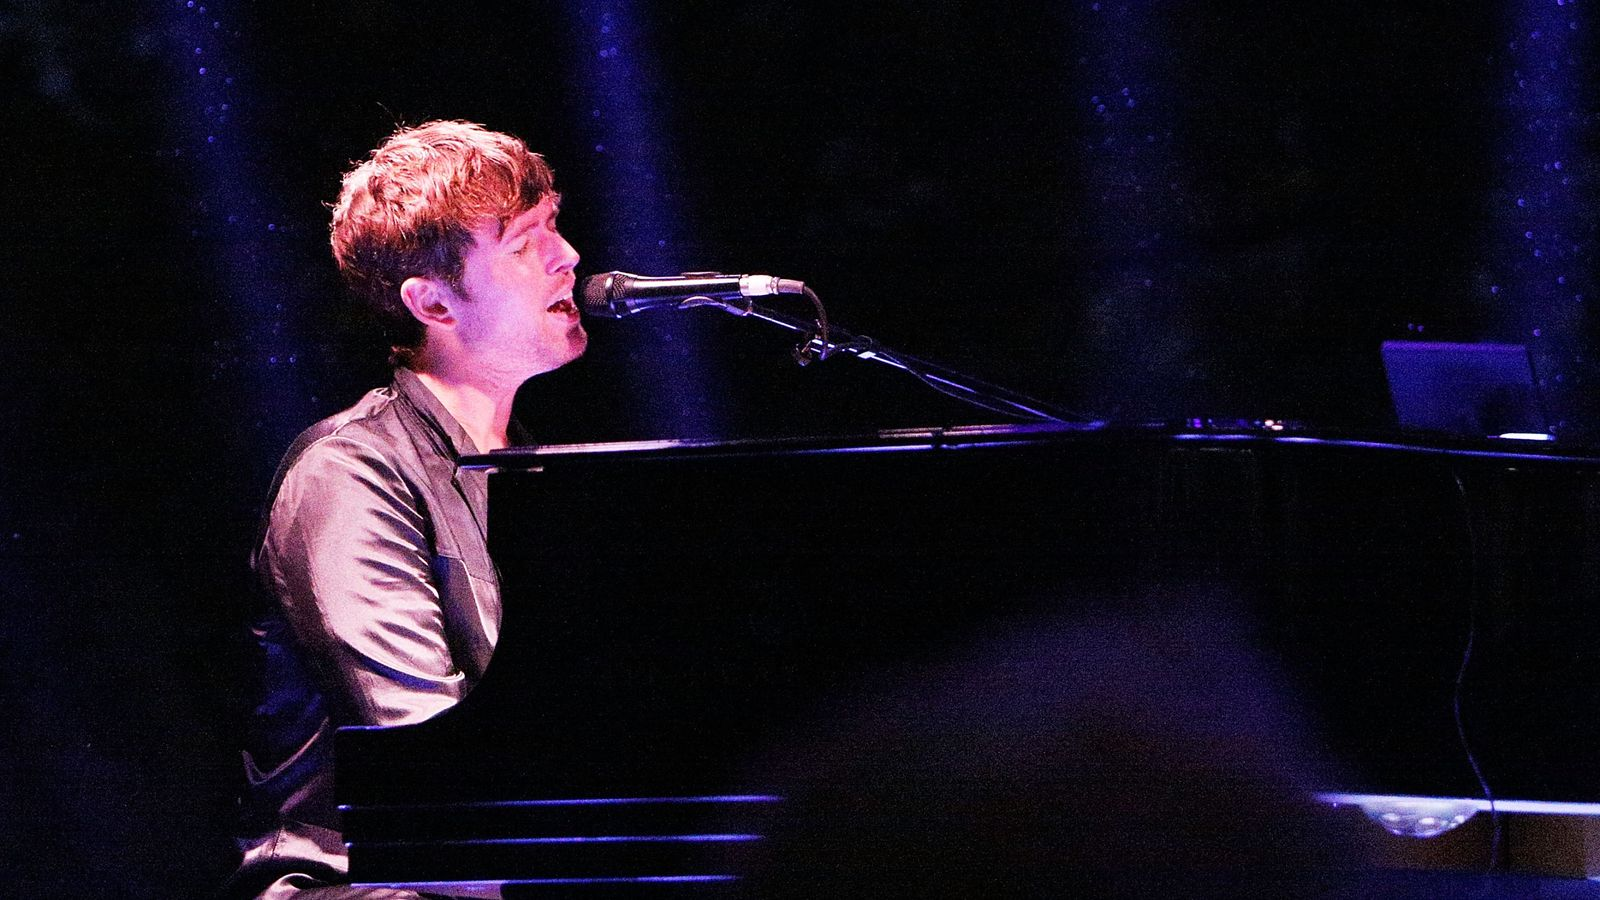 Singer James Blake hits out at 'sad boy' label